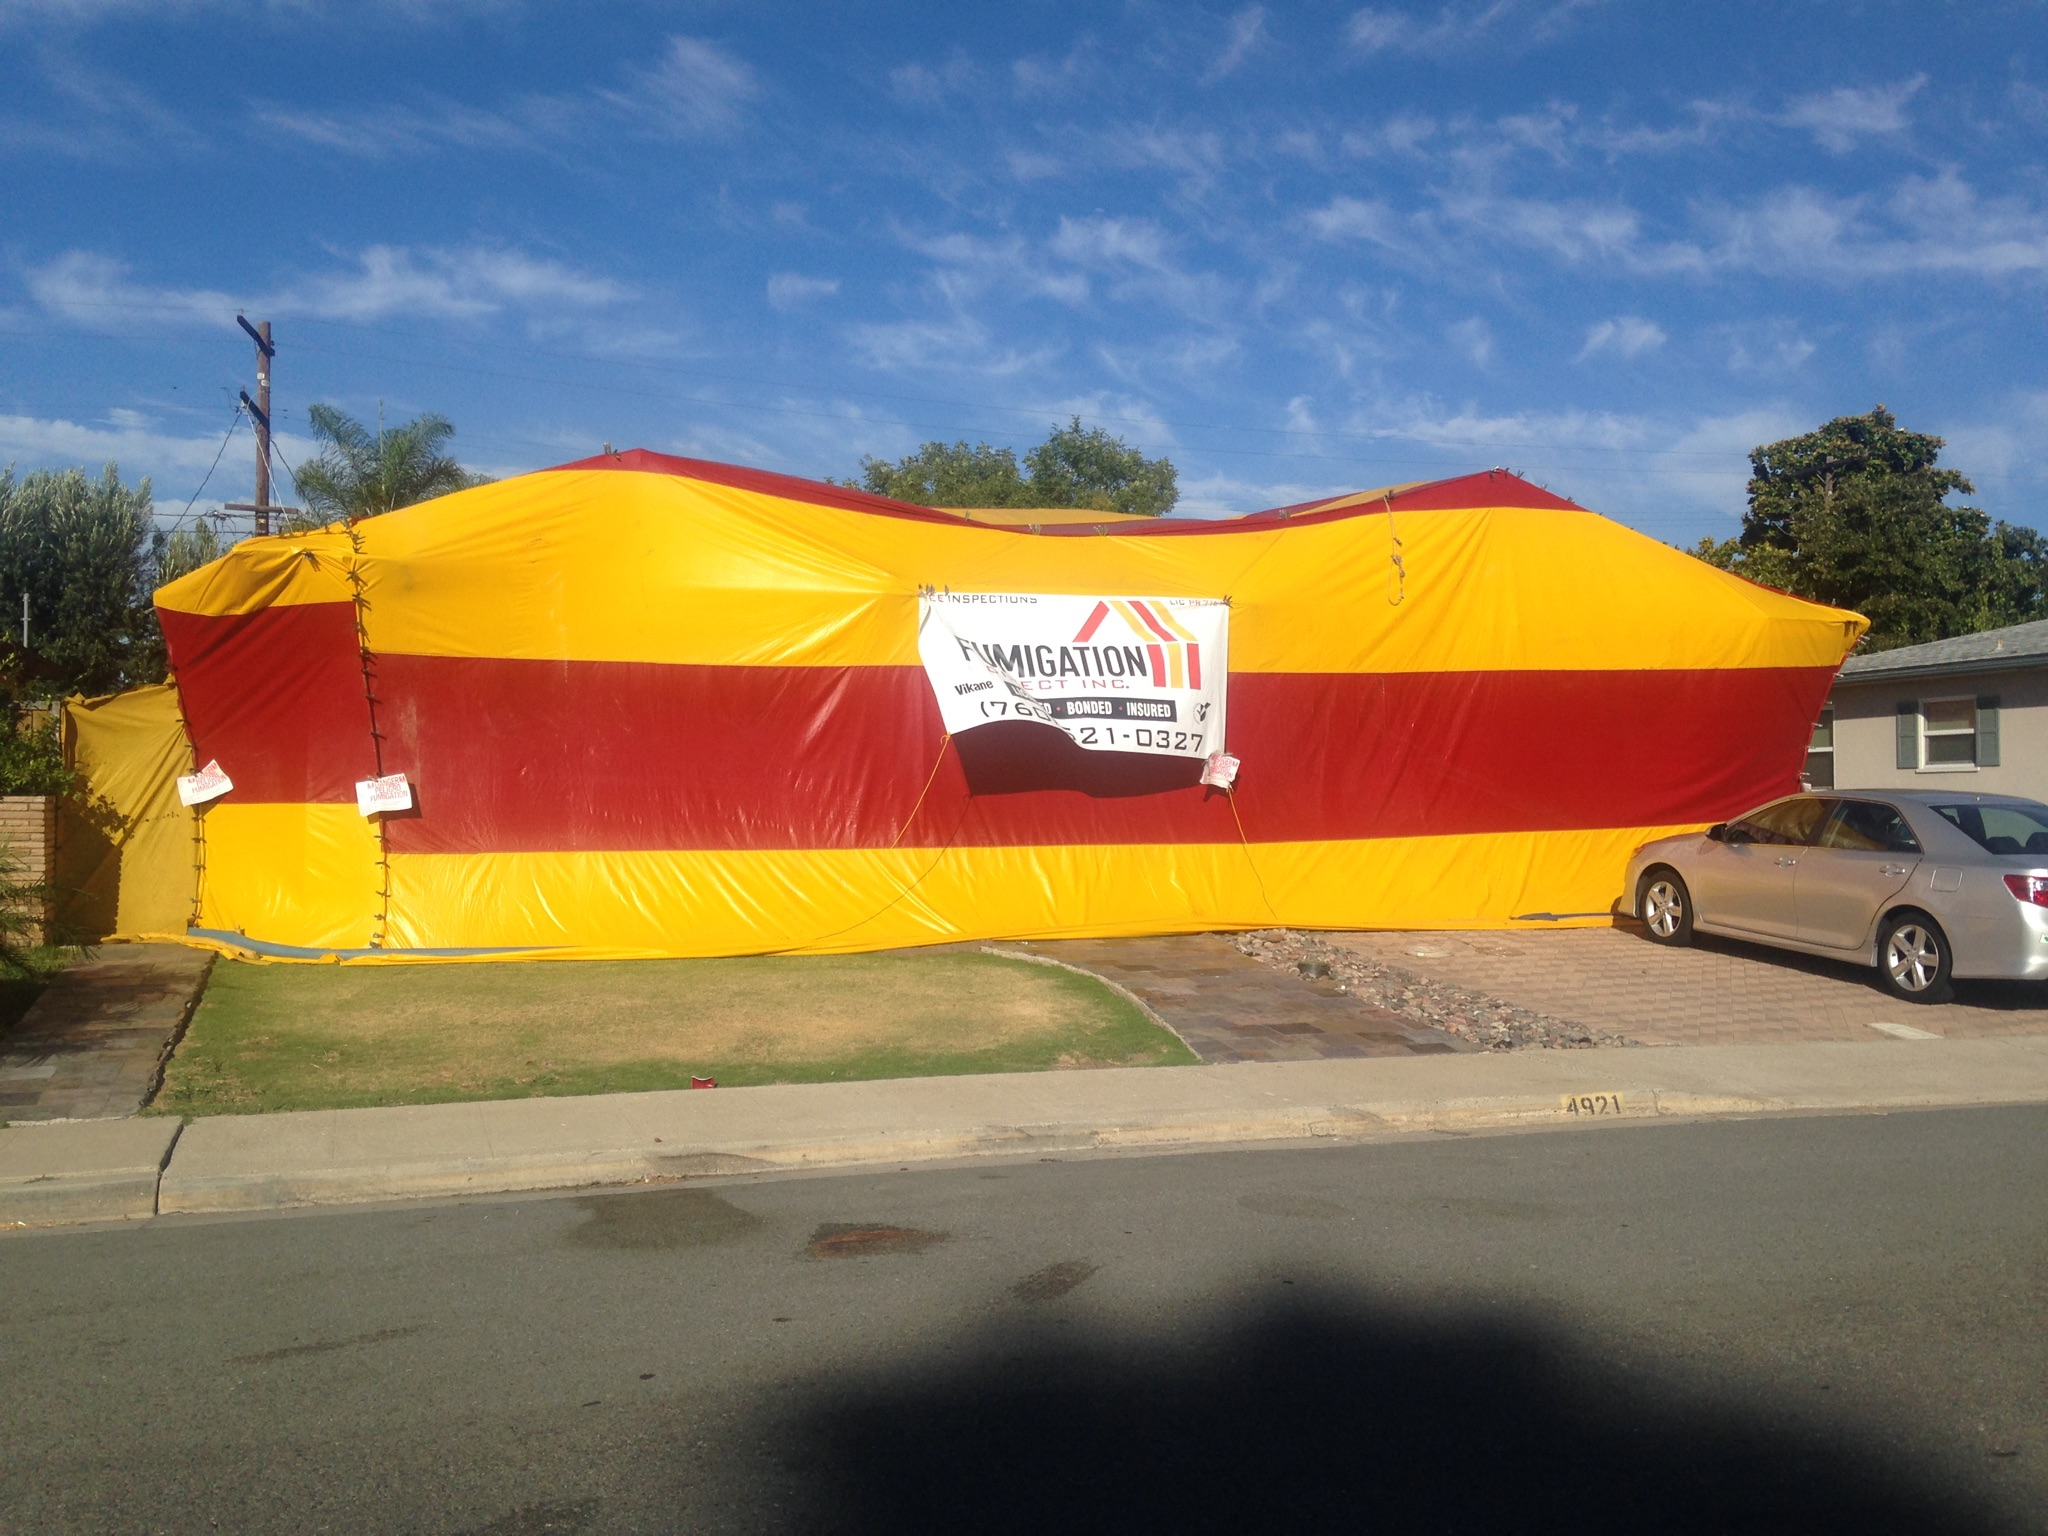 house fumigation tent